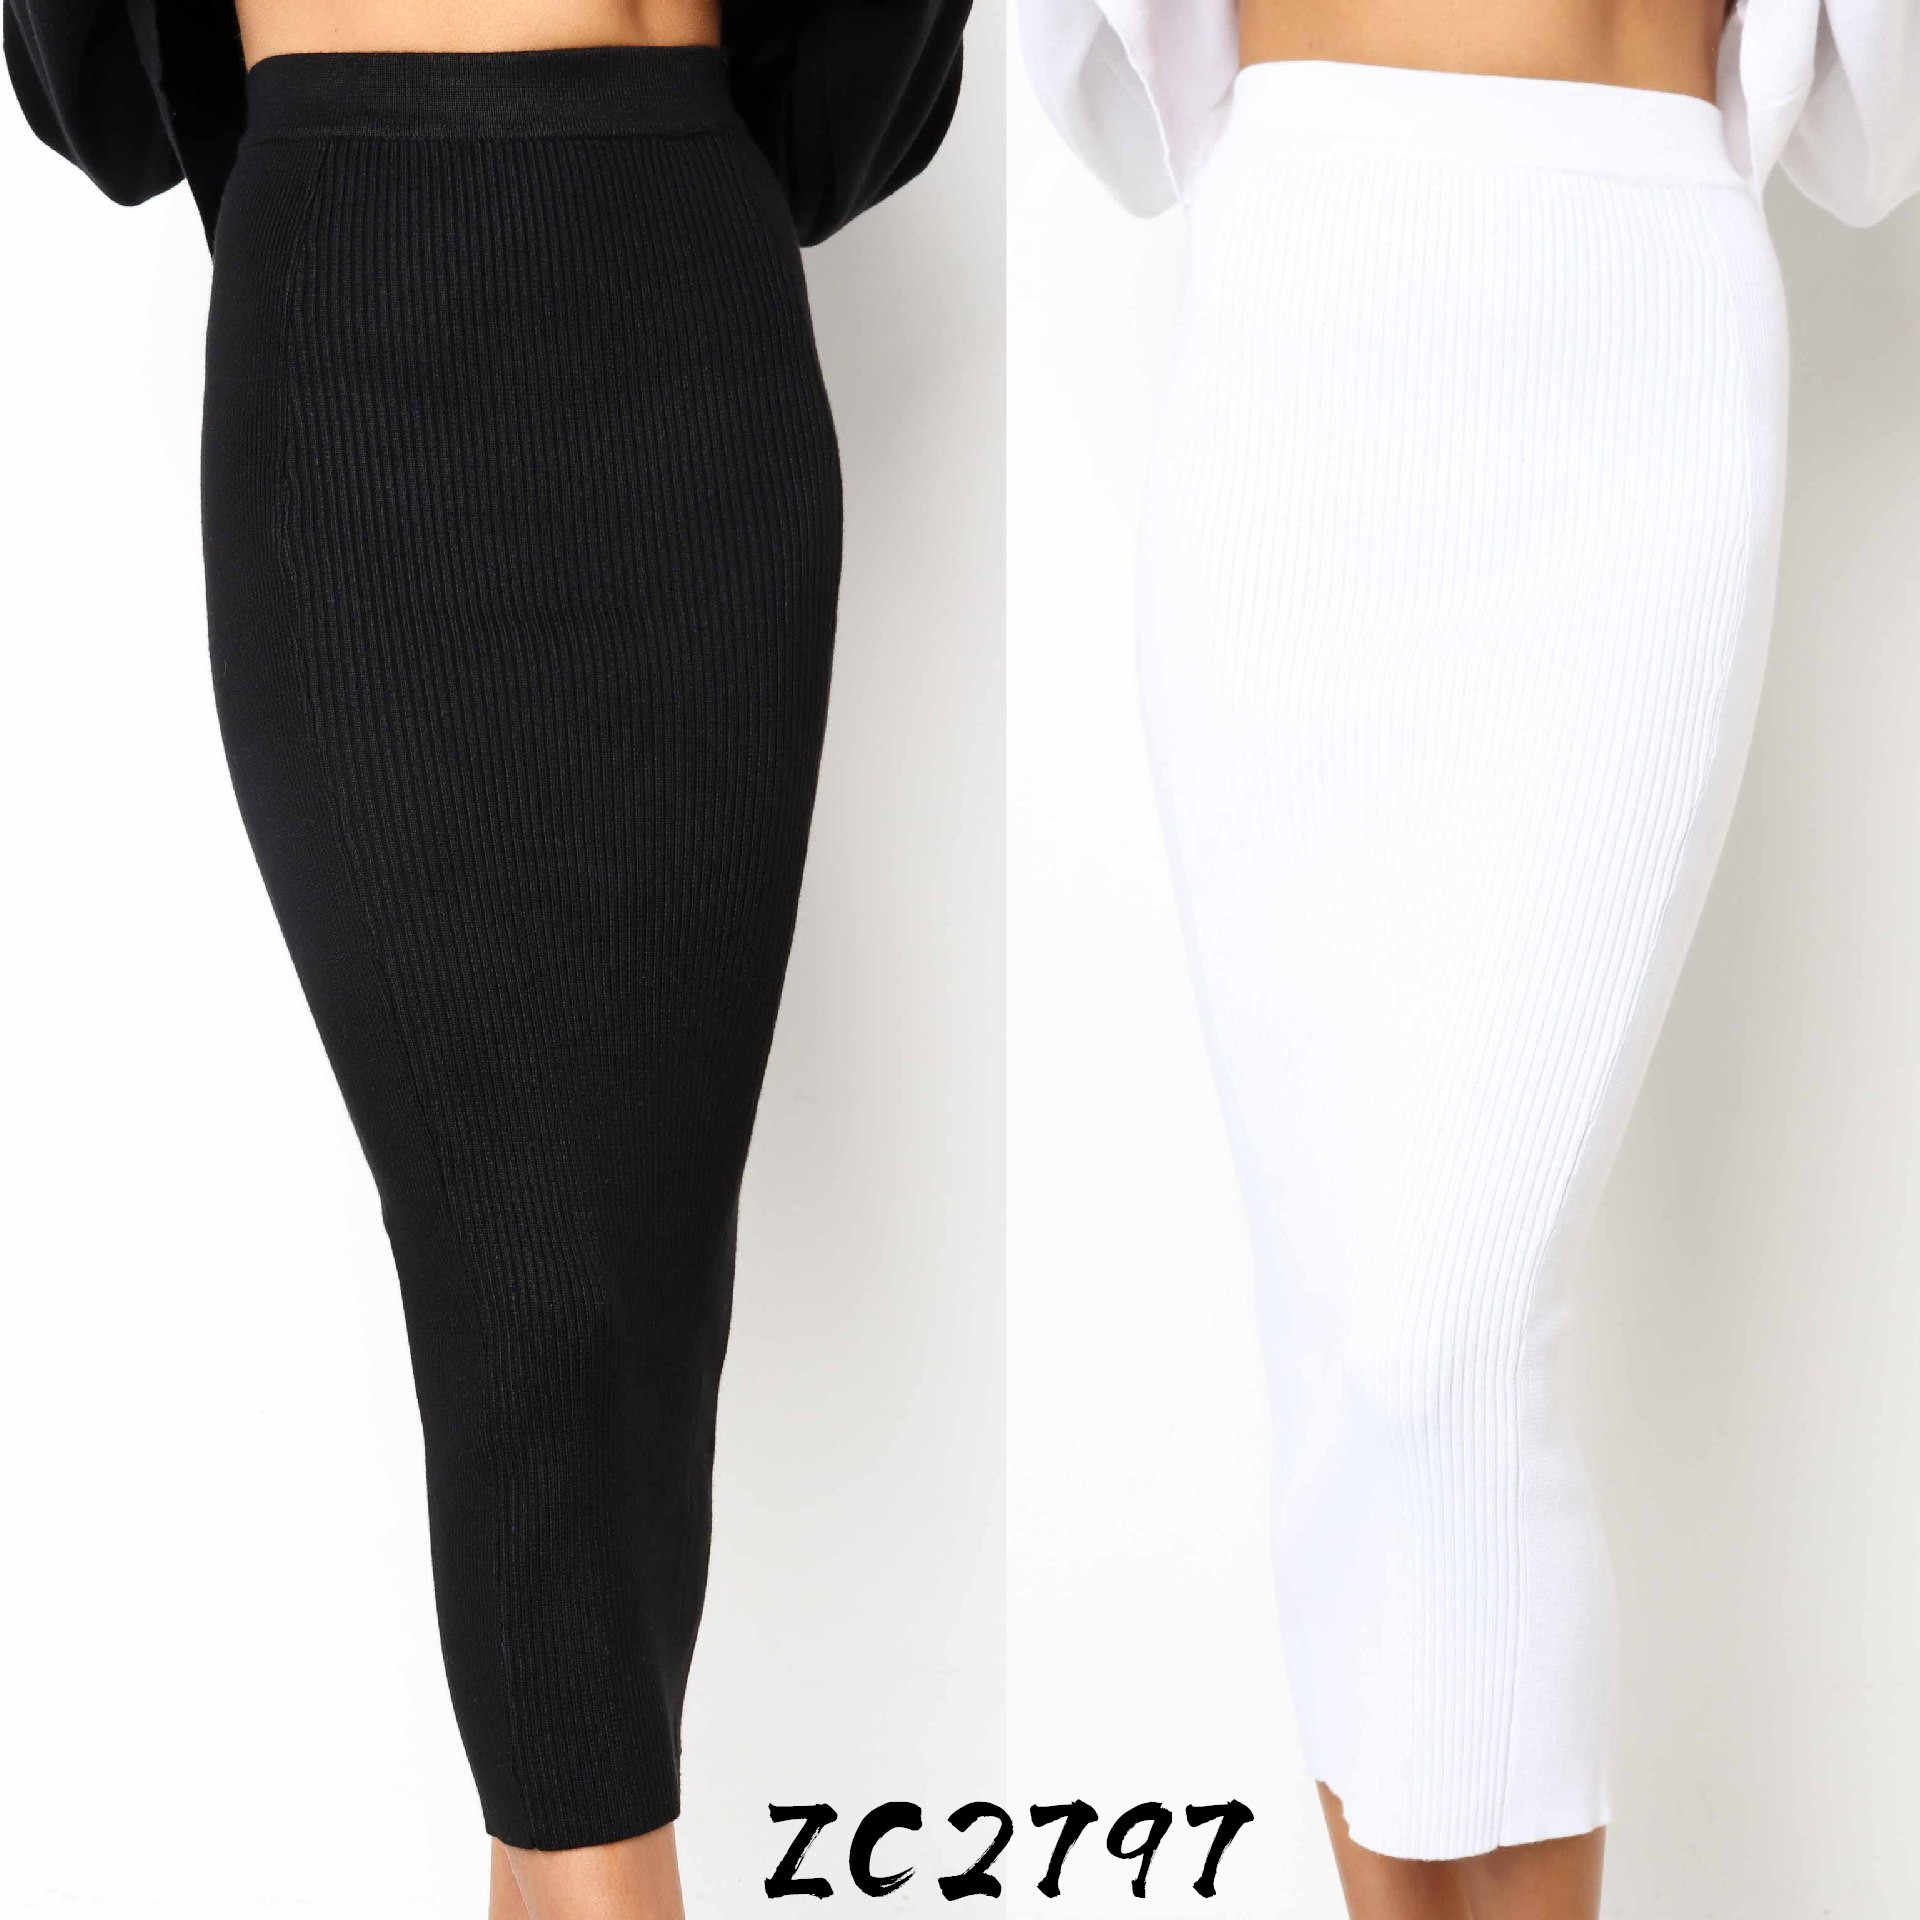 LOSSKY Knitted 2019 Autumn Bodycon Long Skirt Sexy Black White High Waist Tight Women Maxi Elegant Party Club Wear Pencil Skirts